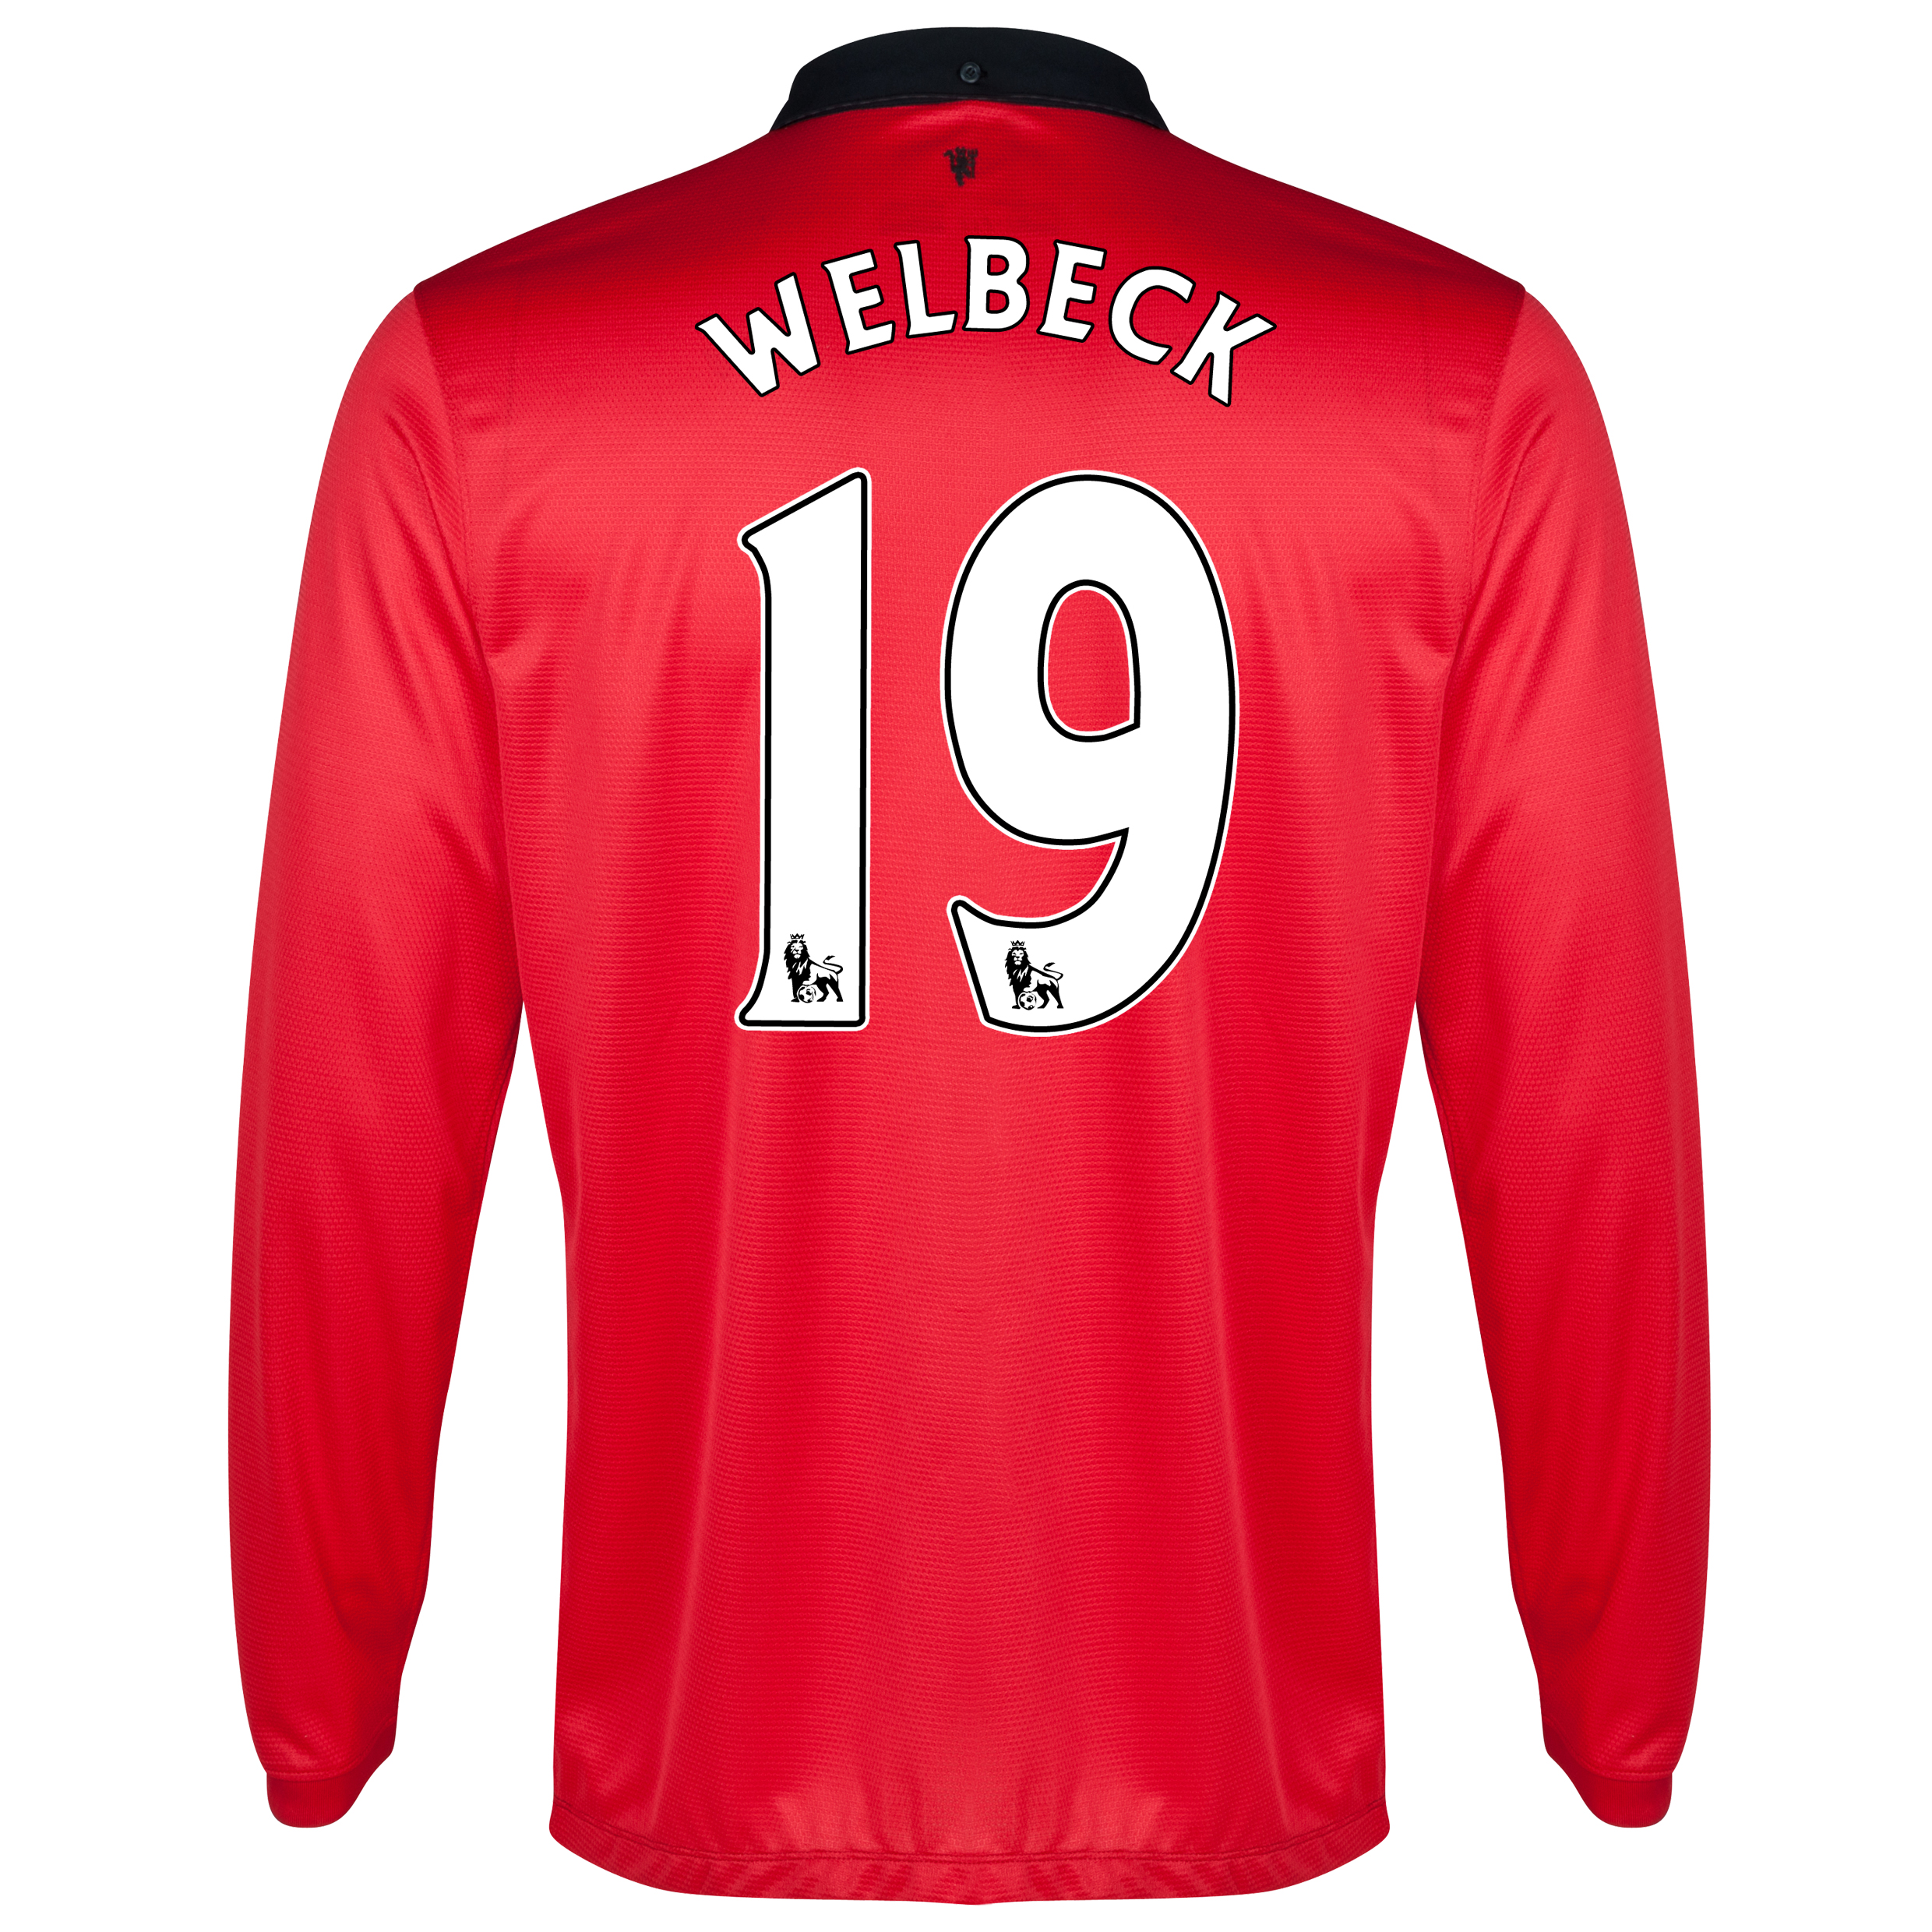 Manchester United Home Shirt 2013/14 - Long Sleeved with Welbeck 19 printing